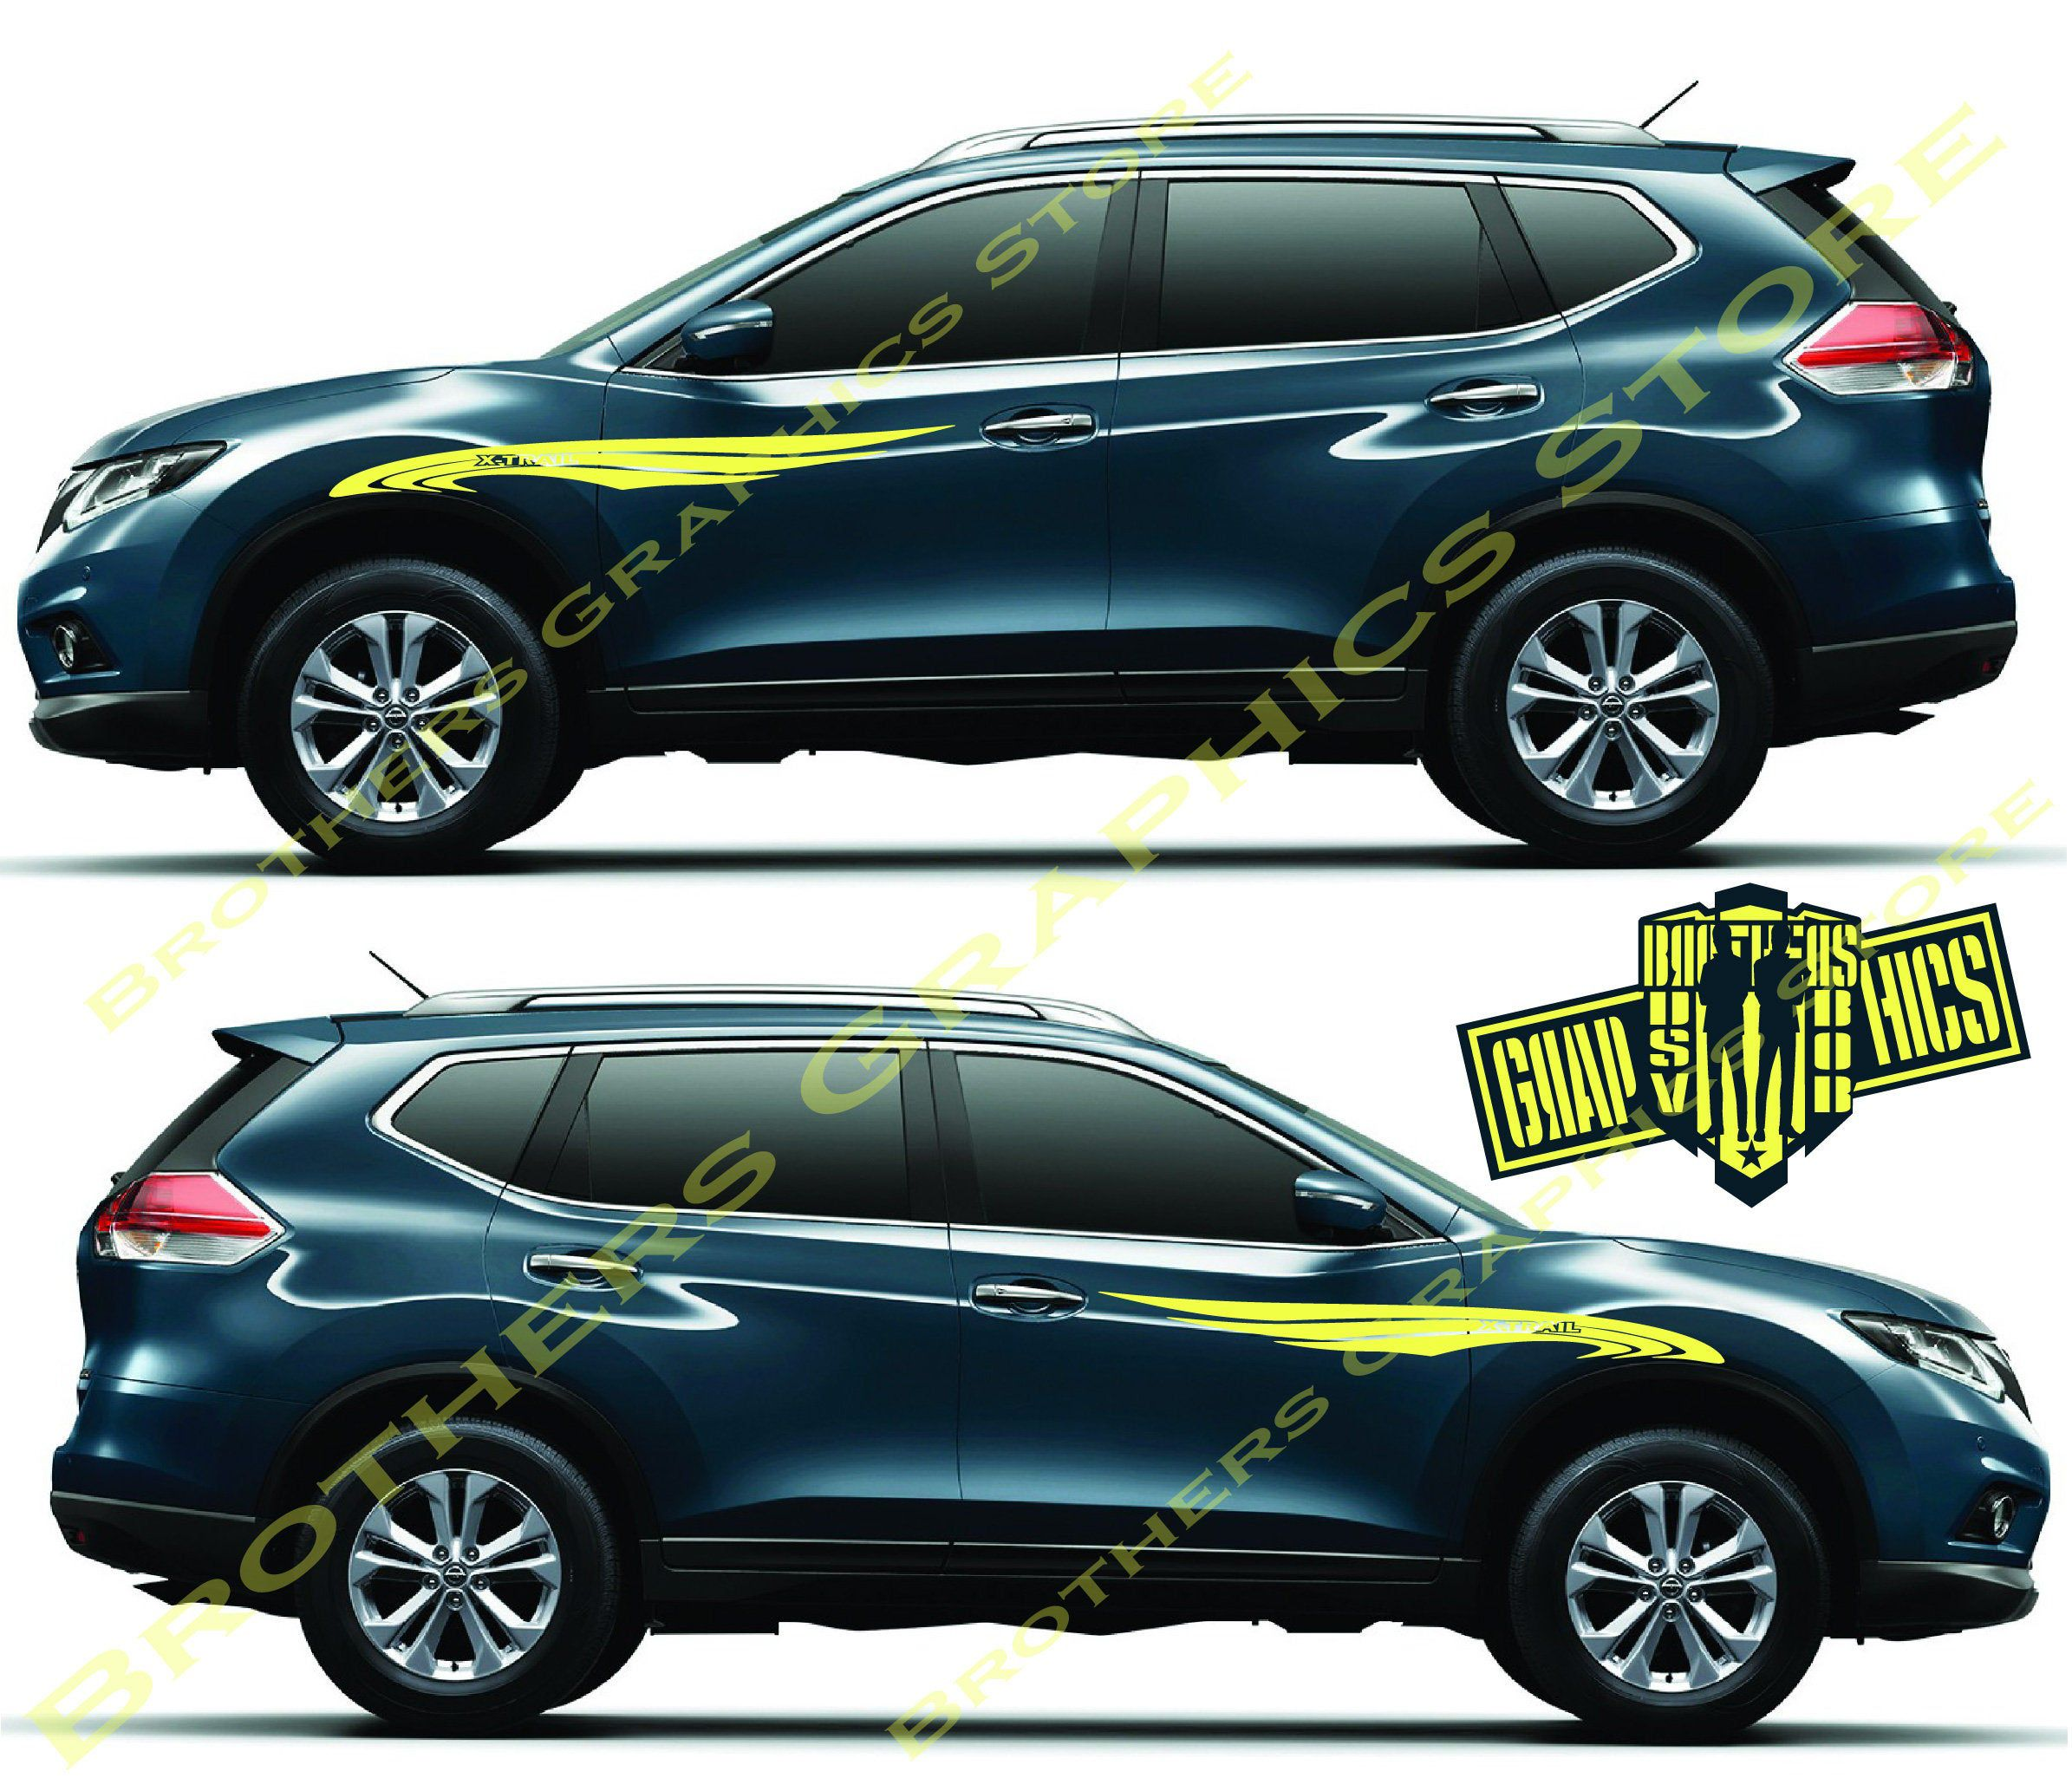 Decal Graphic Sticker Door Sport Stripe Kit Compatible With Nissan X-Trail Wings Decal Graphic Sticker Door Sport Stripe Kit Compatible with Nissan X-Trail Wings Black Things nissan x trail black color